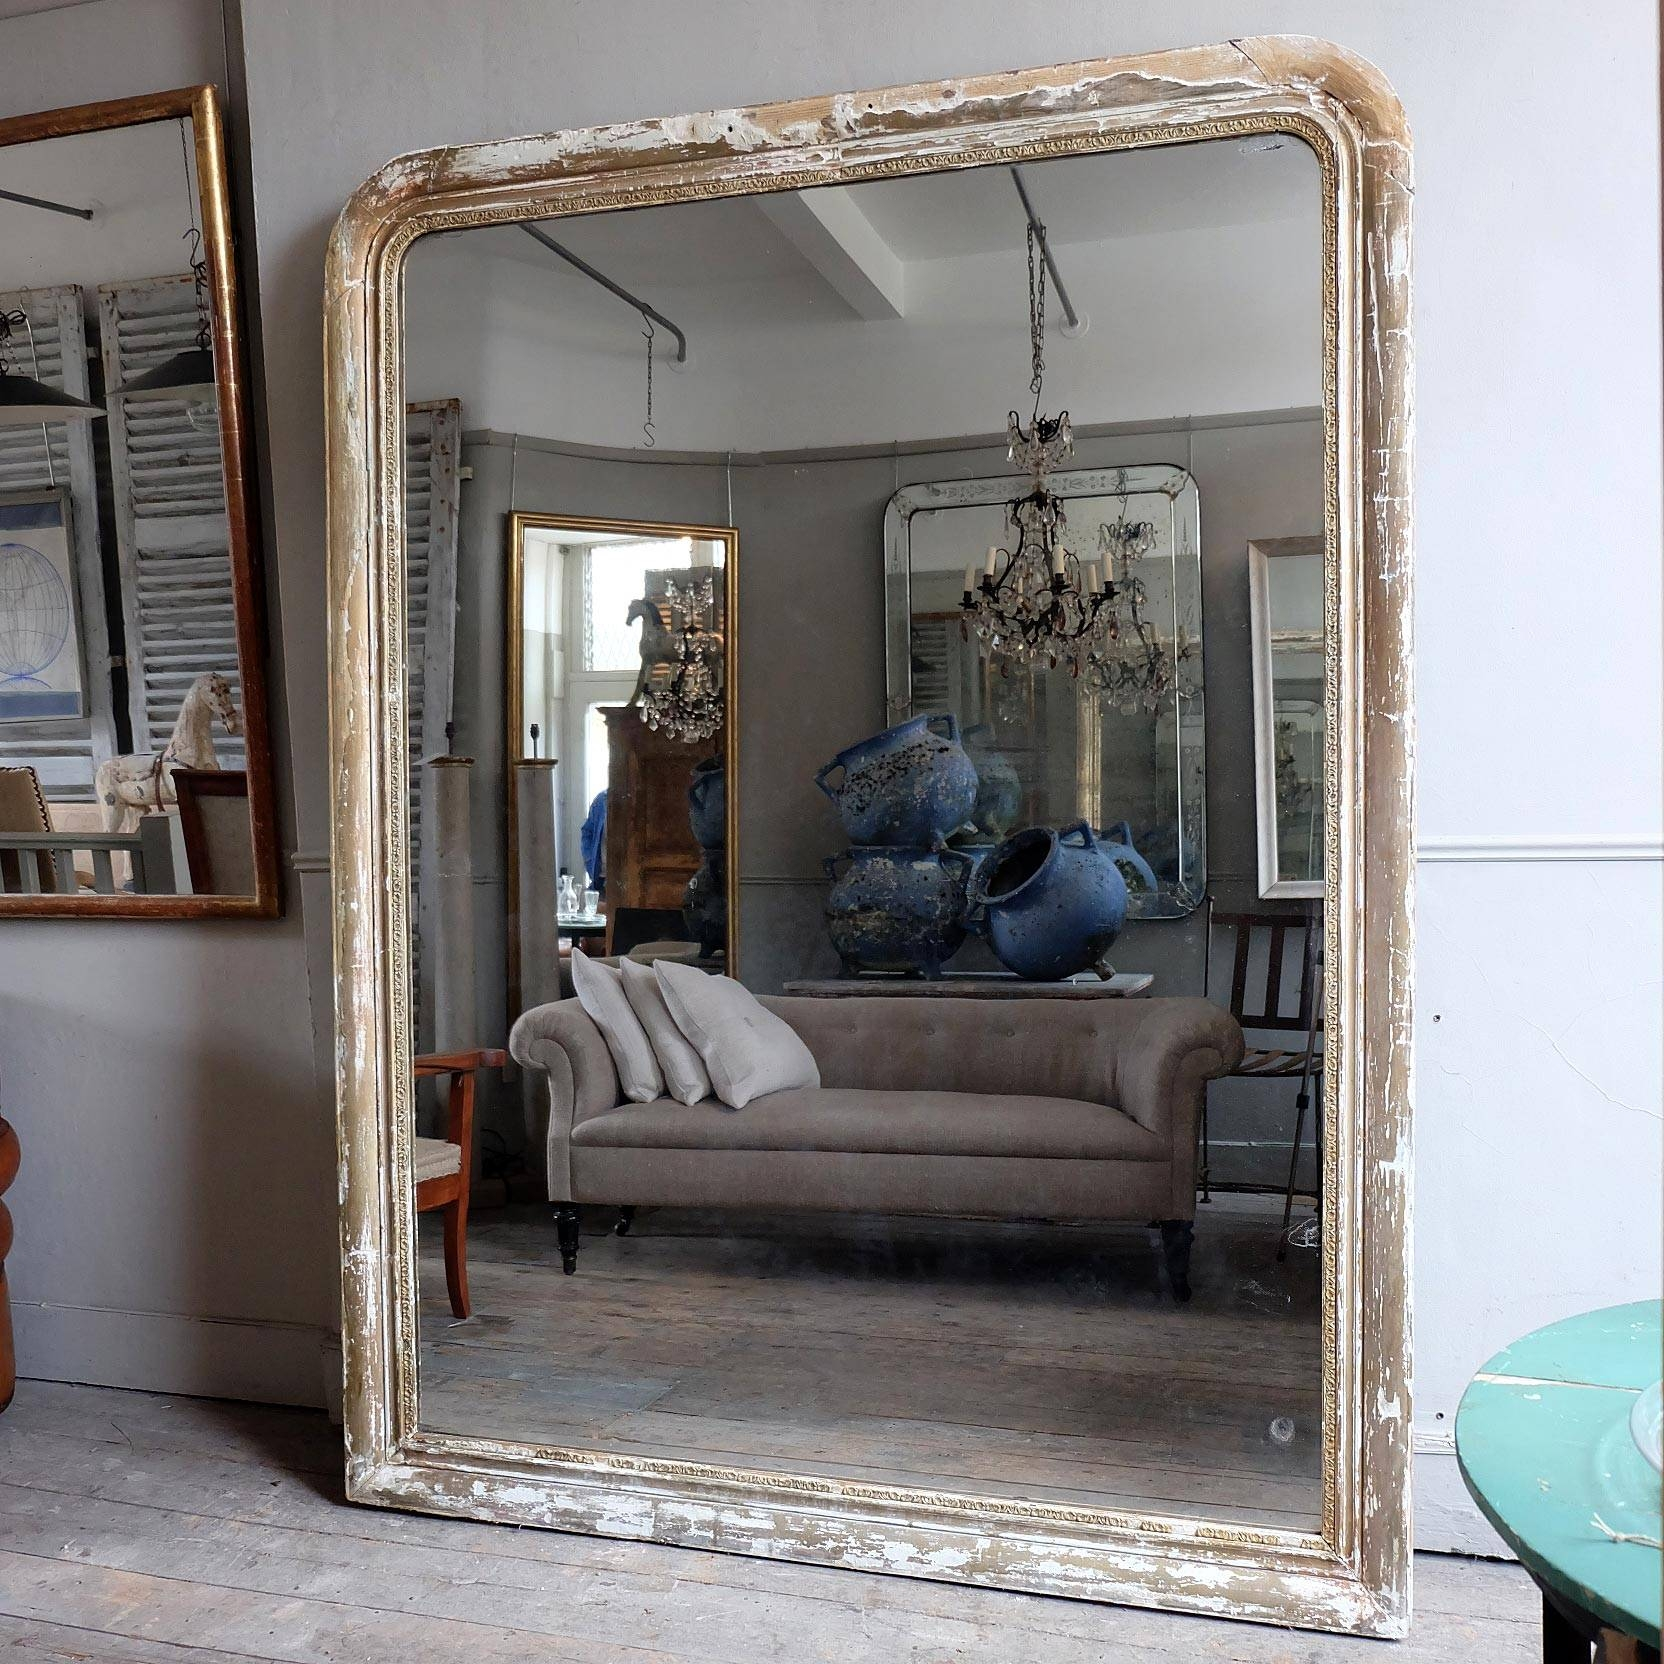 Massive Antique Mirror › Puckhaber Decorative Antiques regarding Huge Antique Mirrors (Image 10 of 15)